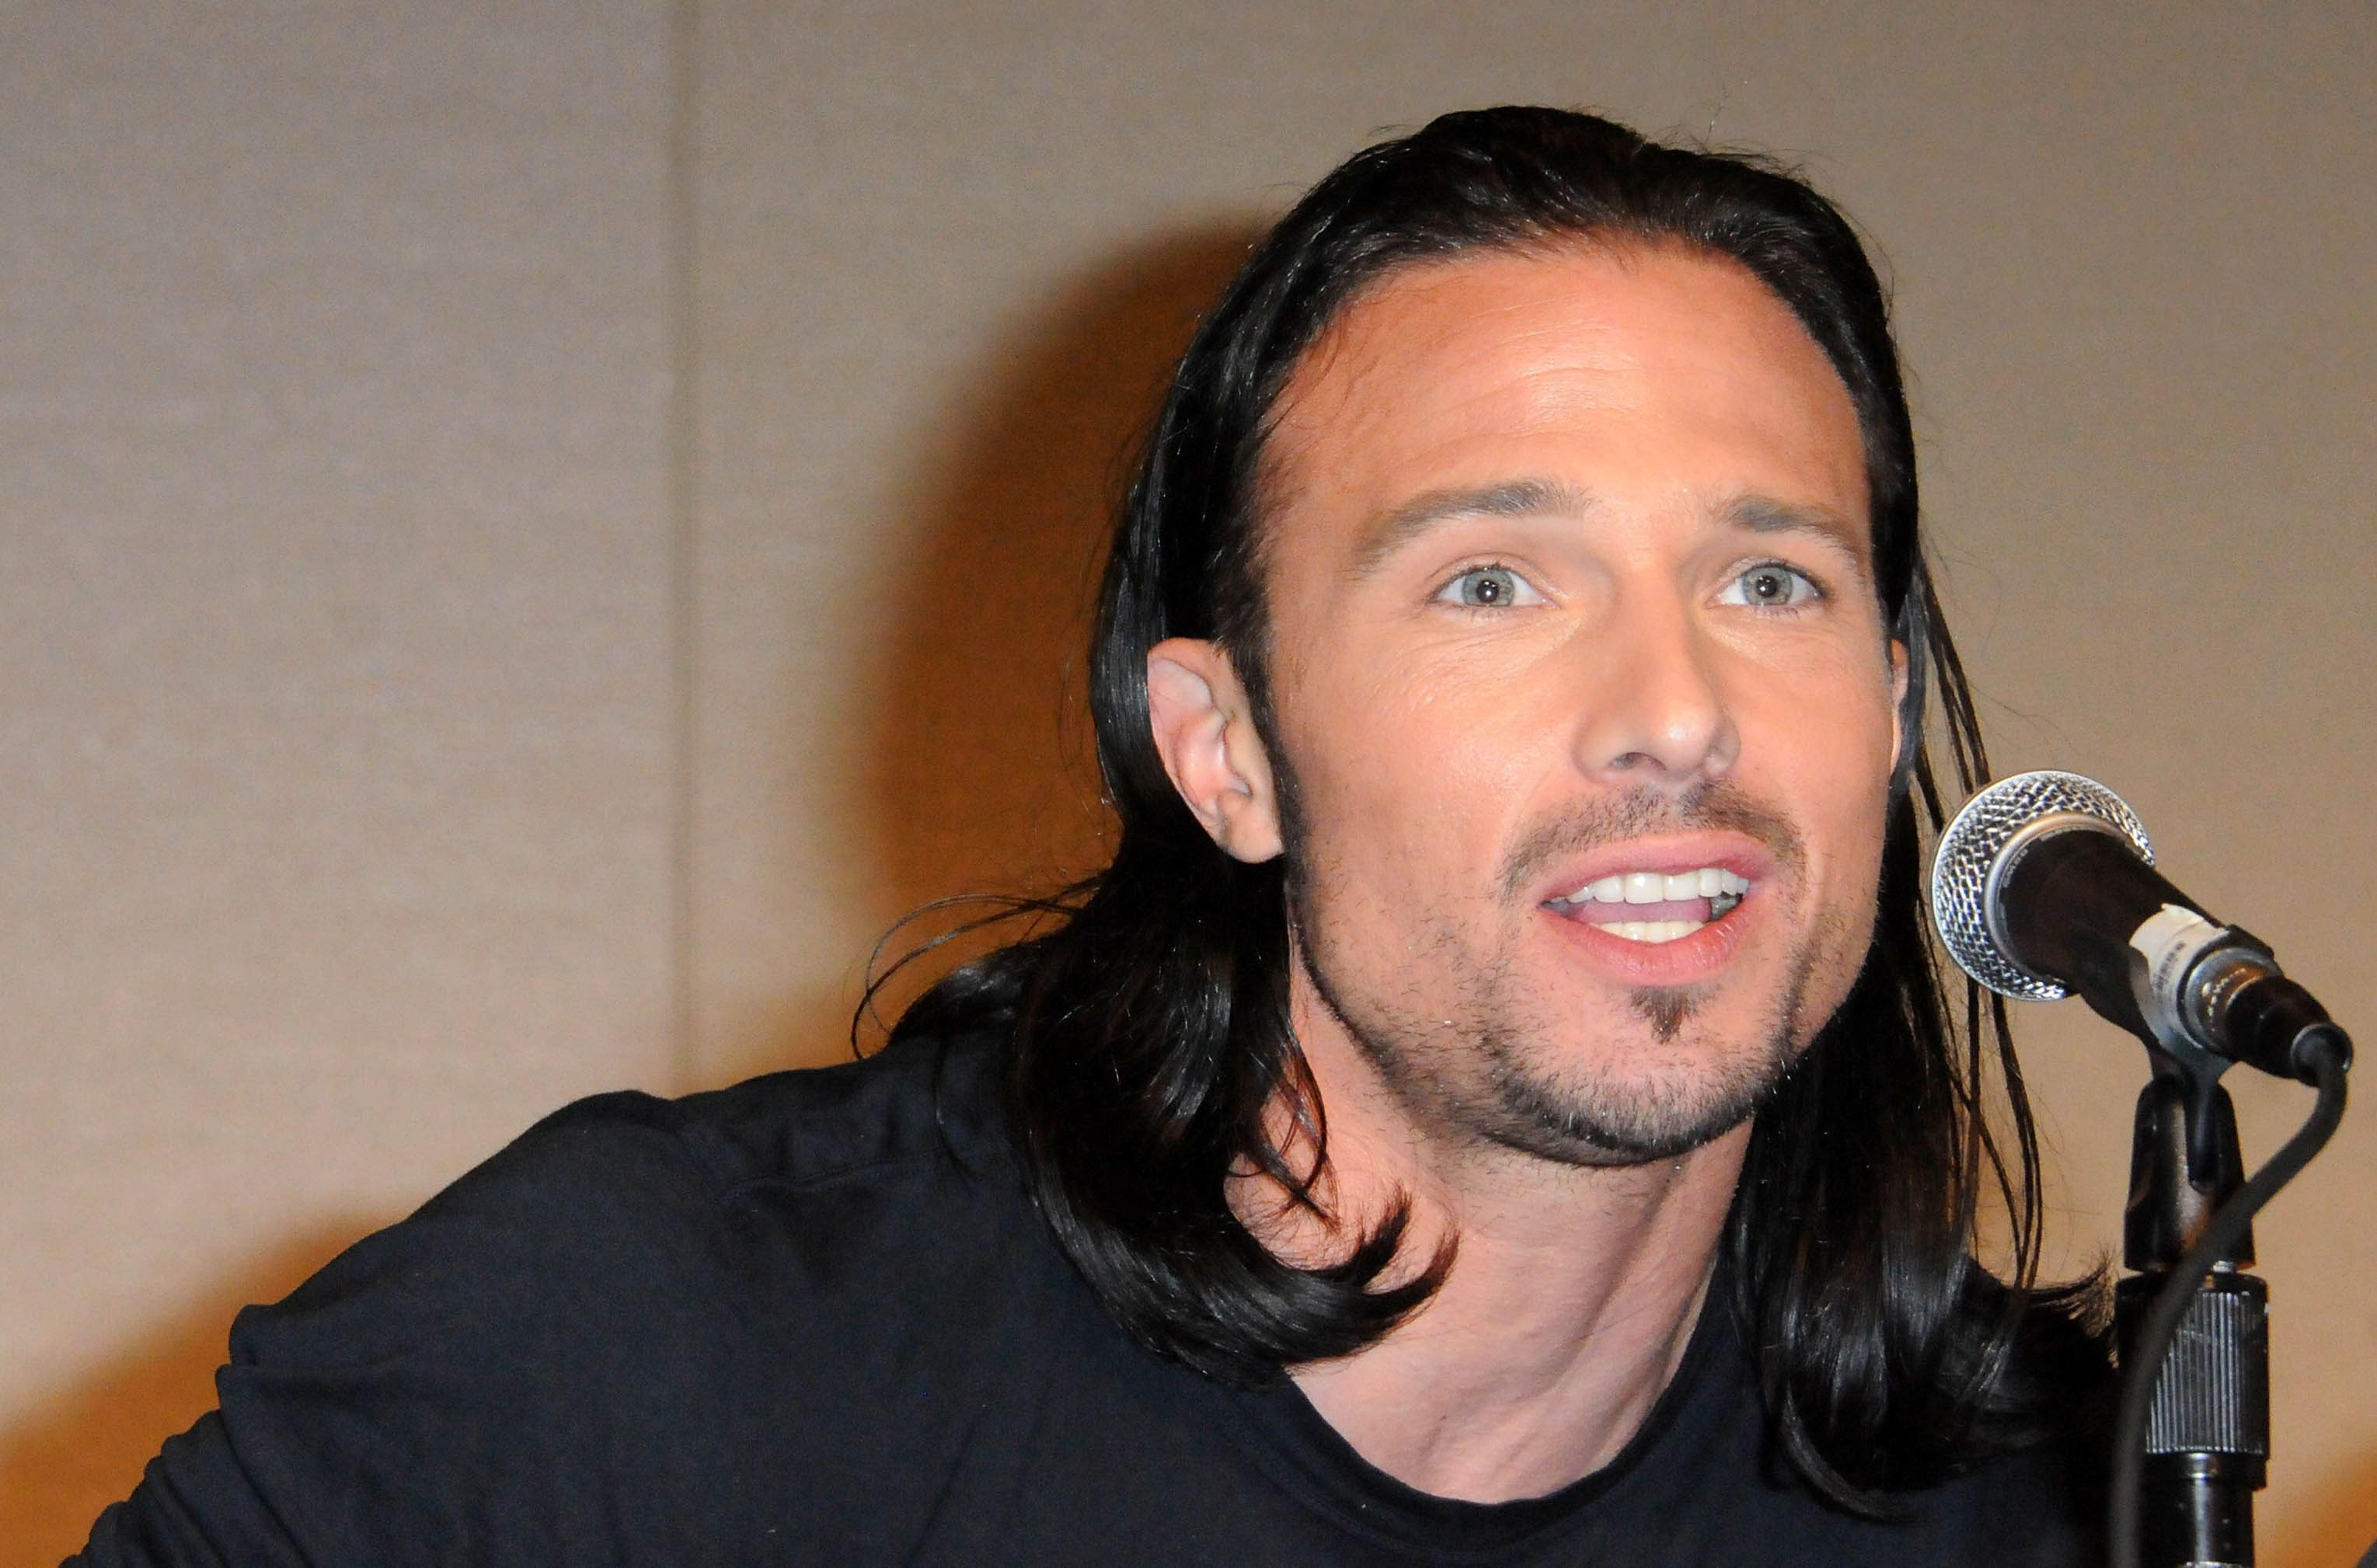 PASADENA, CA - AUGUST 19:  Actor Ricardo Medina Jr.  participates in the 2012 Power Morphicon 3 held at the Pasadena Convention Center on August 19, 2012 in Pasadena, California.  (Photo by Albert L. Ortega/Getty Images)